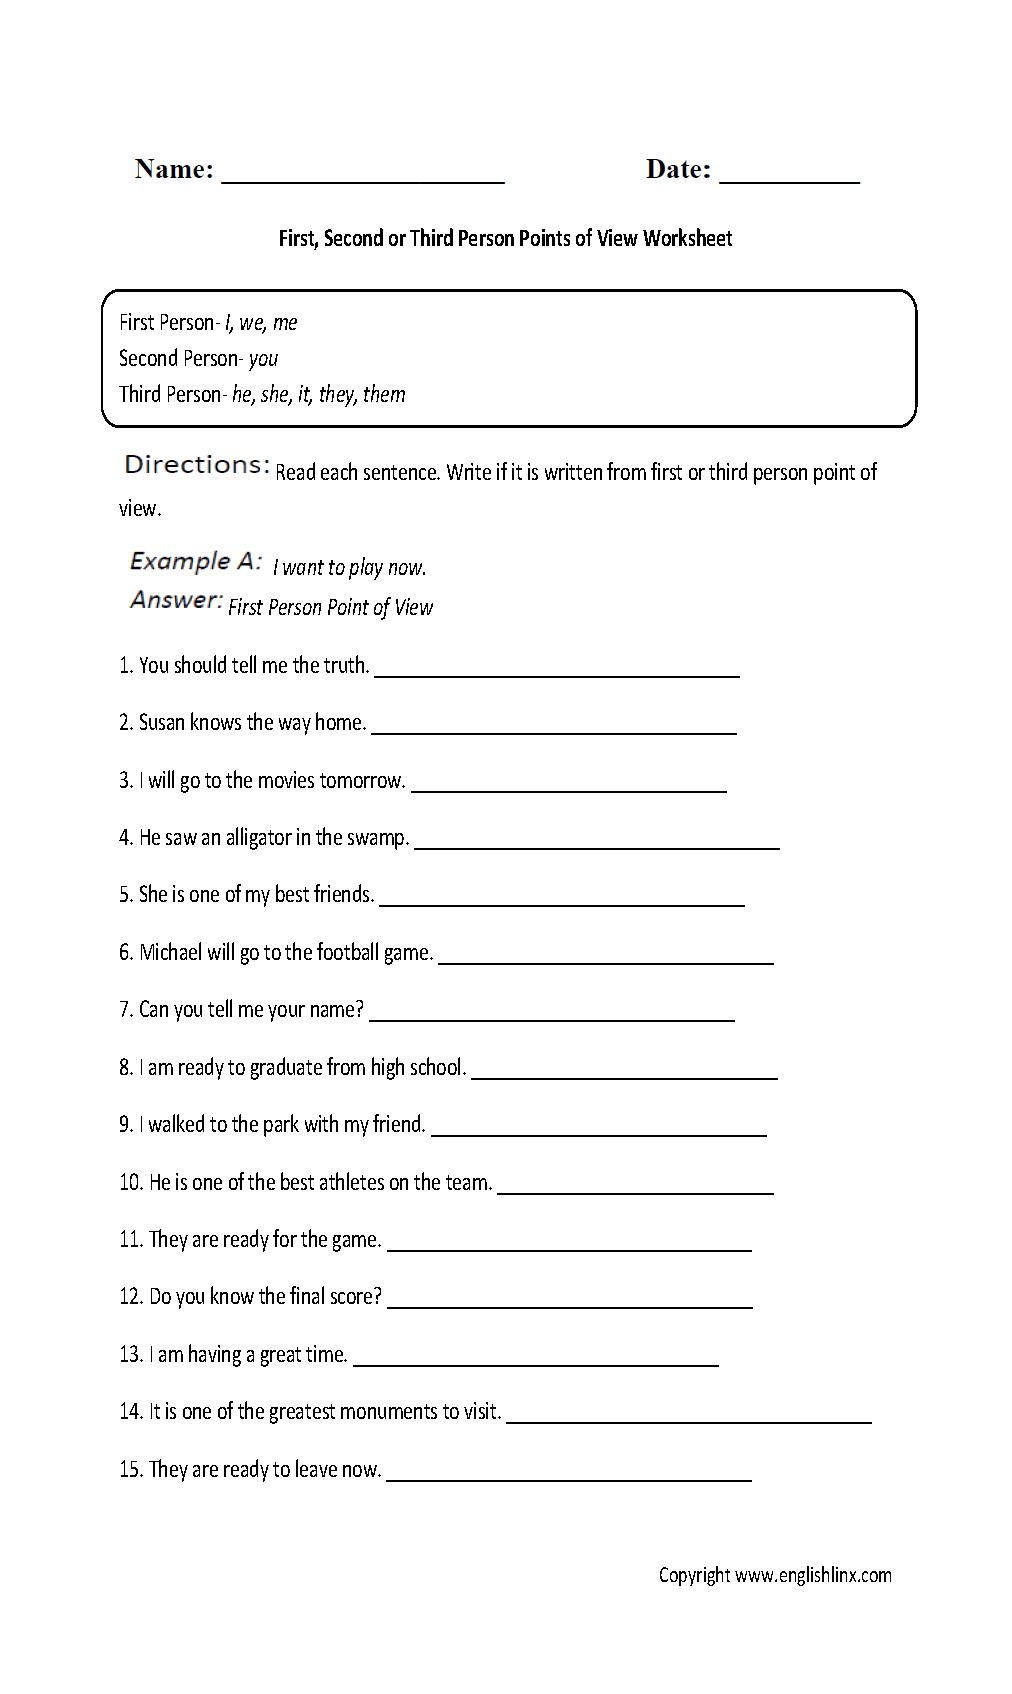 Weirdmailus  Marvelous Englishlinxcom  Point Of View Worksheets With Exquisite Point Of View Worksheet With Amusing Free Fine Motor Skills Worksheets Also Homophones Worksheets Grade  In Addition Worksheet Percentages And Free Phonics Worksheets For Nd Grade As Well As Romeo And Juliet Pre Reading Worksheet Additionally Sensory Language Worksheets From Englishlinxcom With Weirdmailus  Exquisite Englishlinxcom  Point Of View Worksheets With Amusing Point Of View Worksheet And Marvelous Free Fine Motor Skills Worksheets Also Homophones Worksheets Grade  In Addition Worksheet Percentages From Englishlinxcom